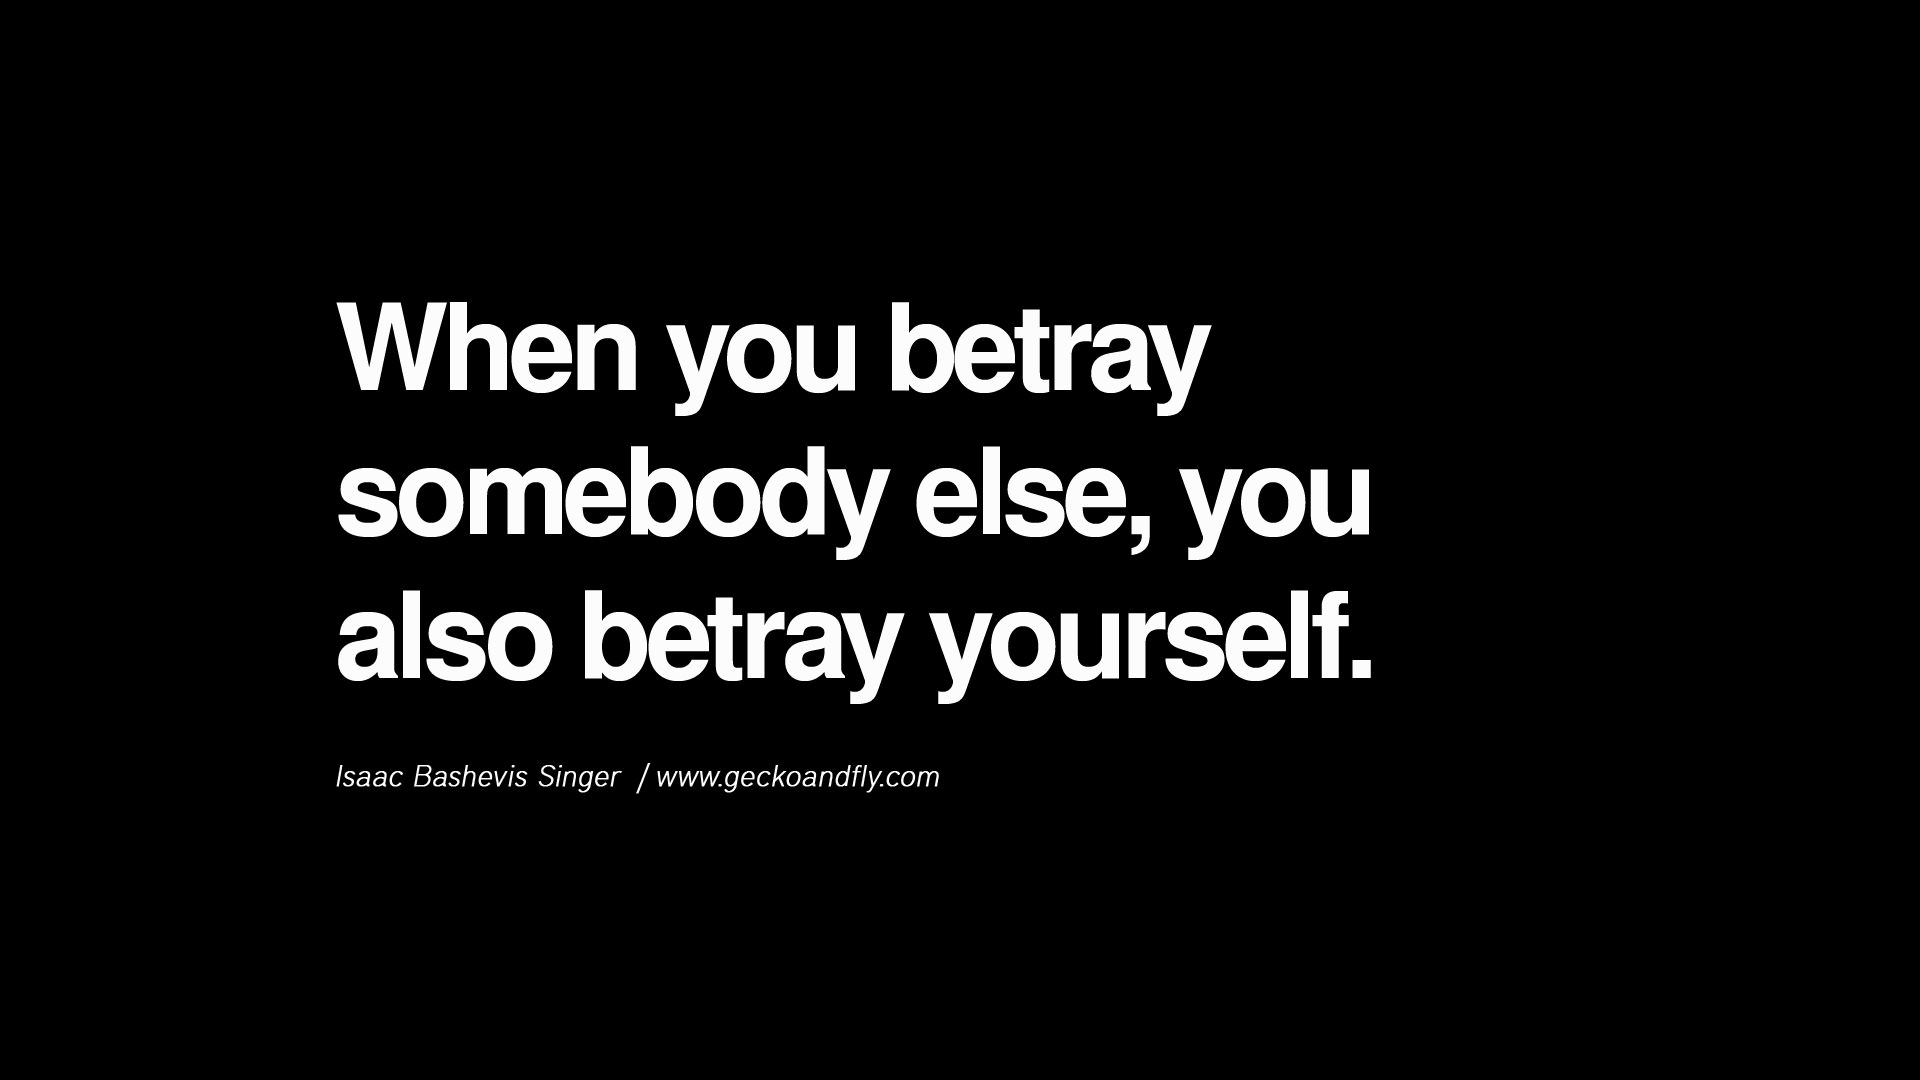 Betrayed Quotes Quotesgram: Betrayal By Friends Quotes. QuotesGram